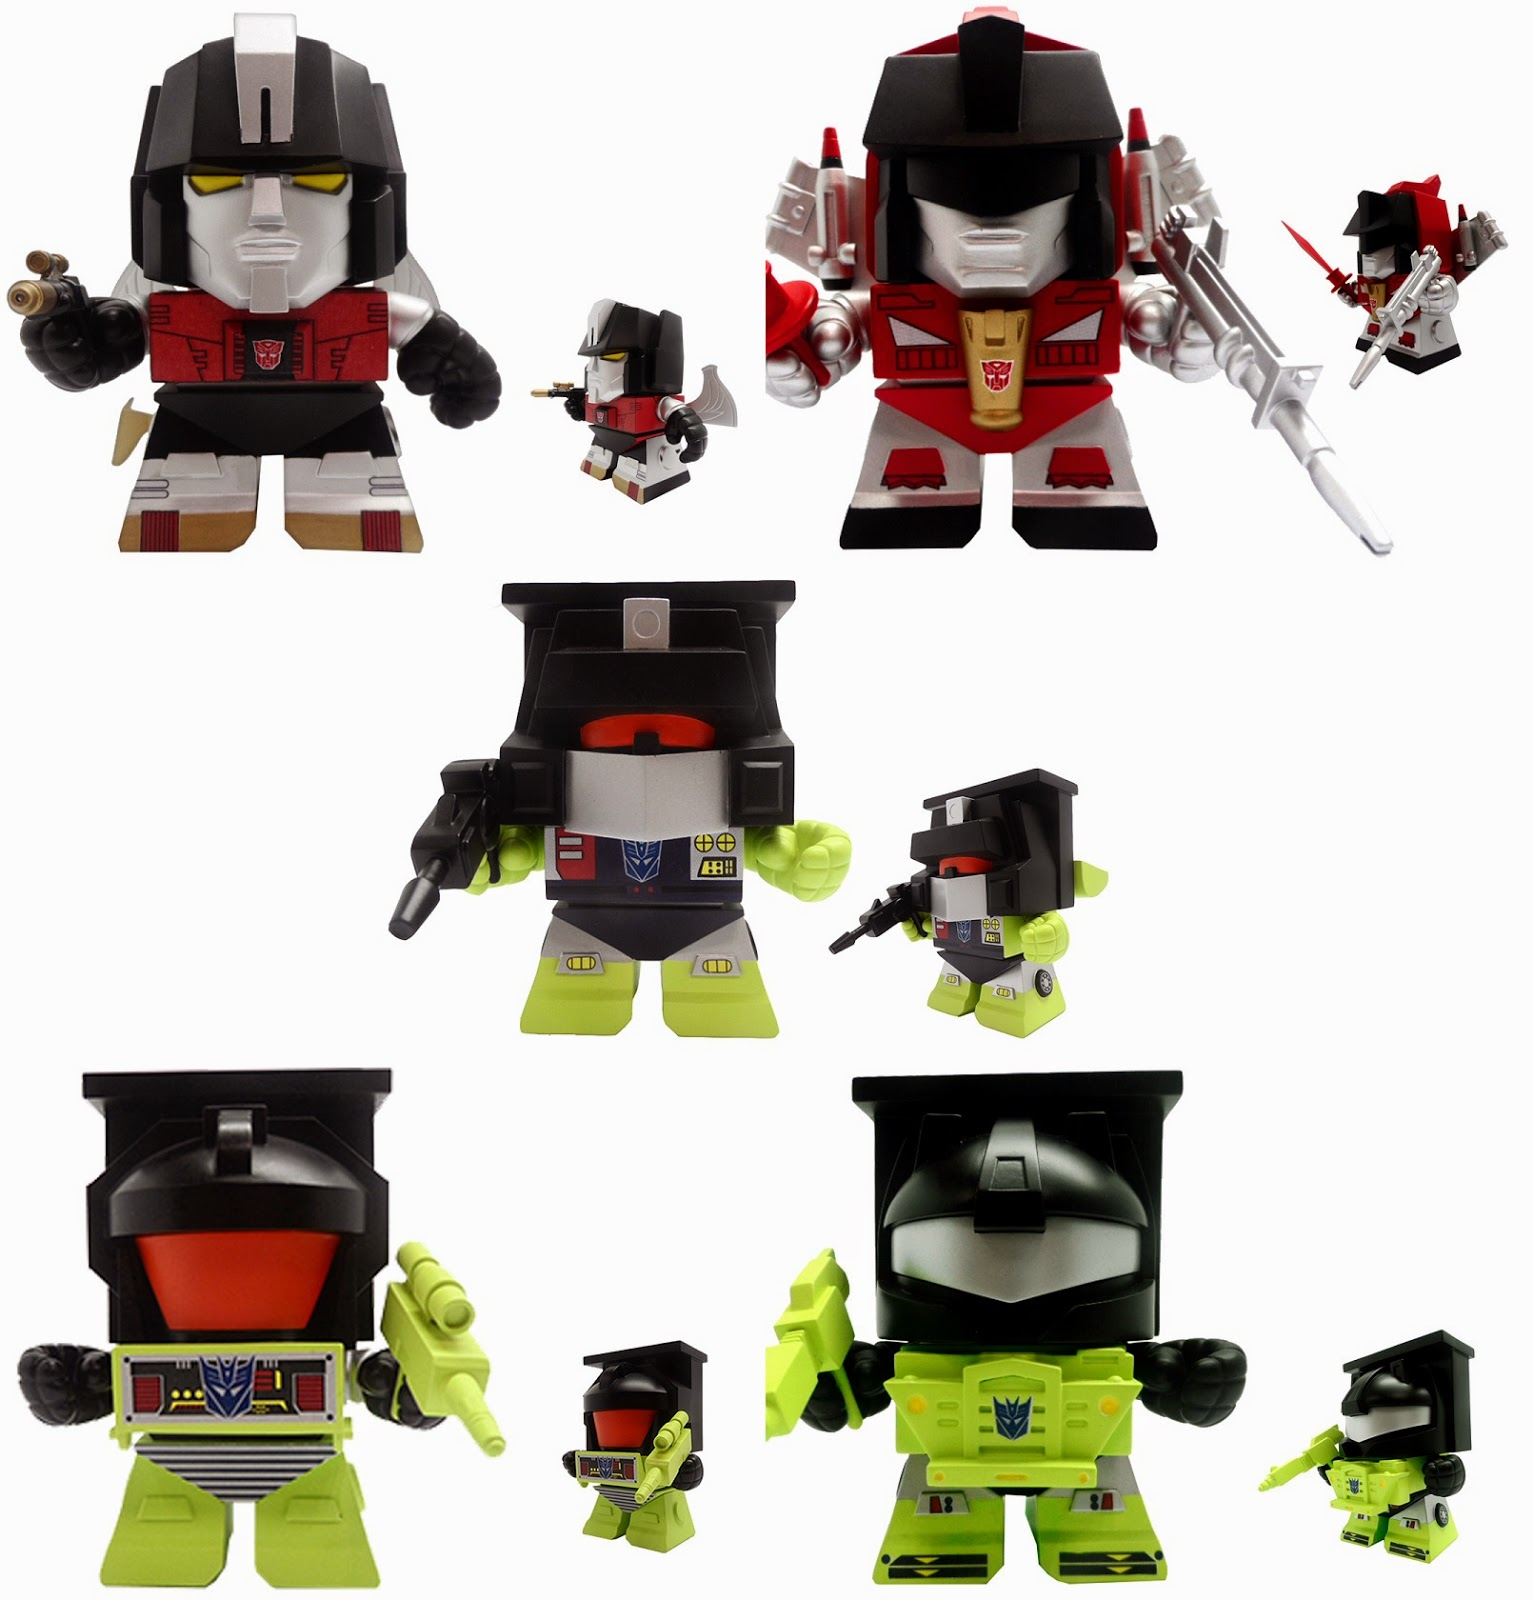 Transformers Mini Figure Series 3 by The Loyal Subjects - Sludge, Swoop, Scrapper, Bonecrusher & Longhaul